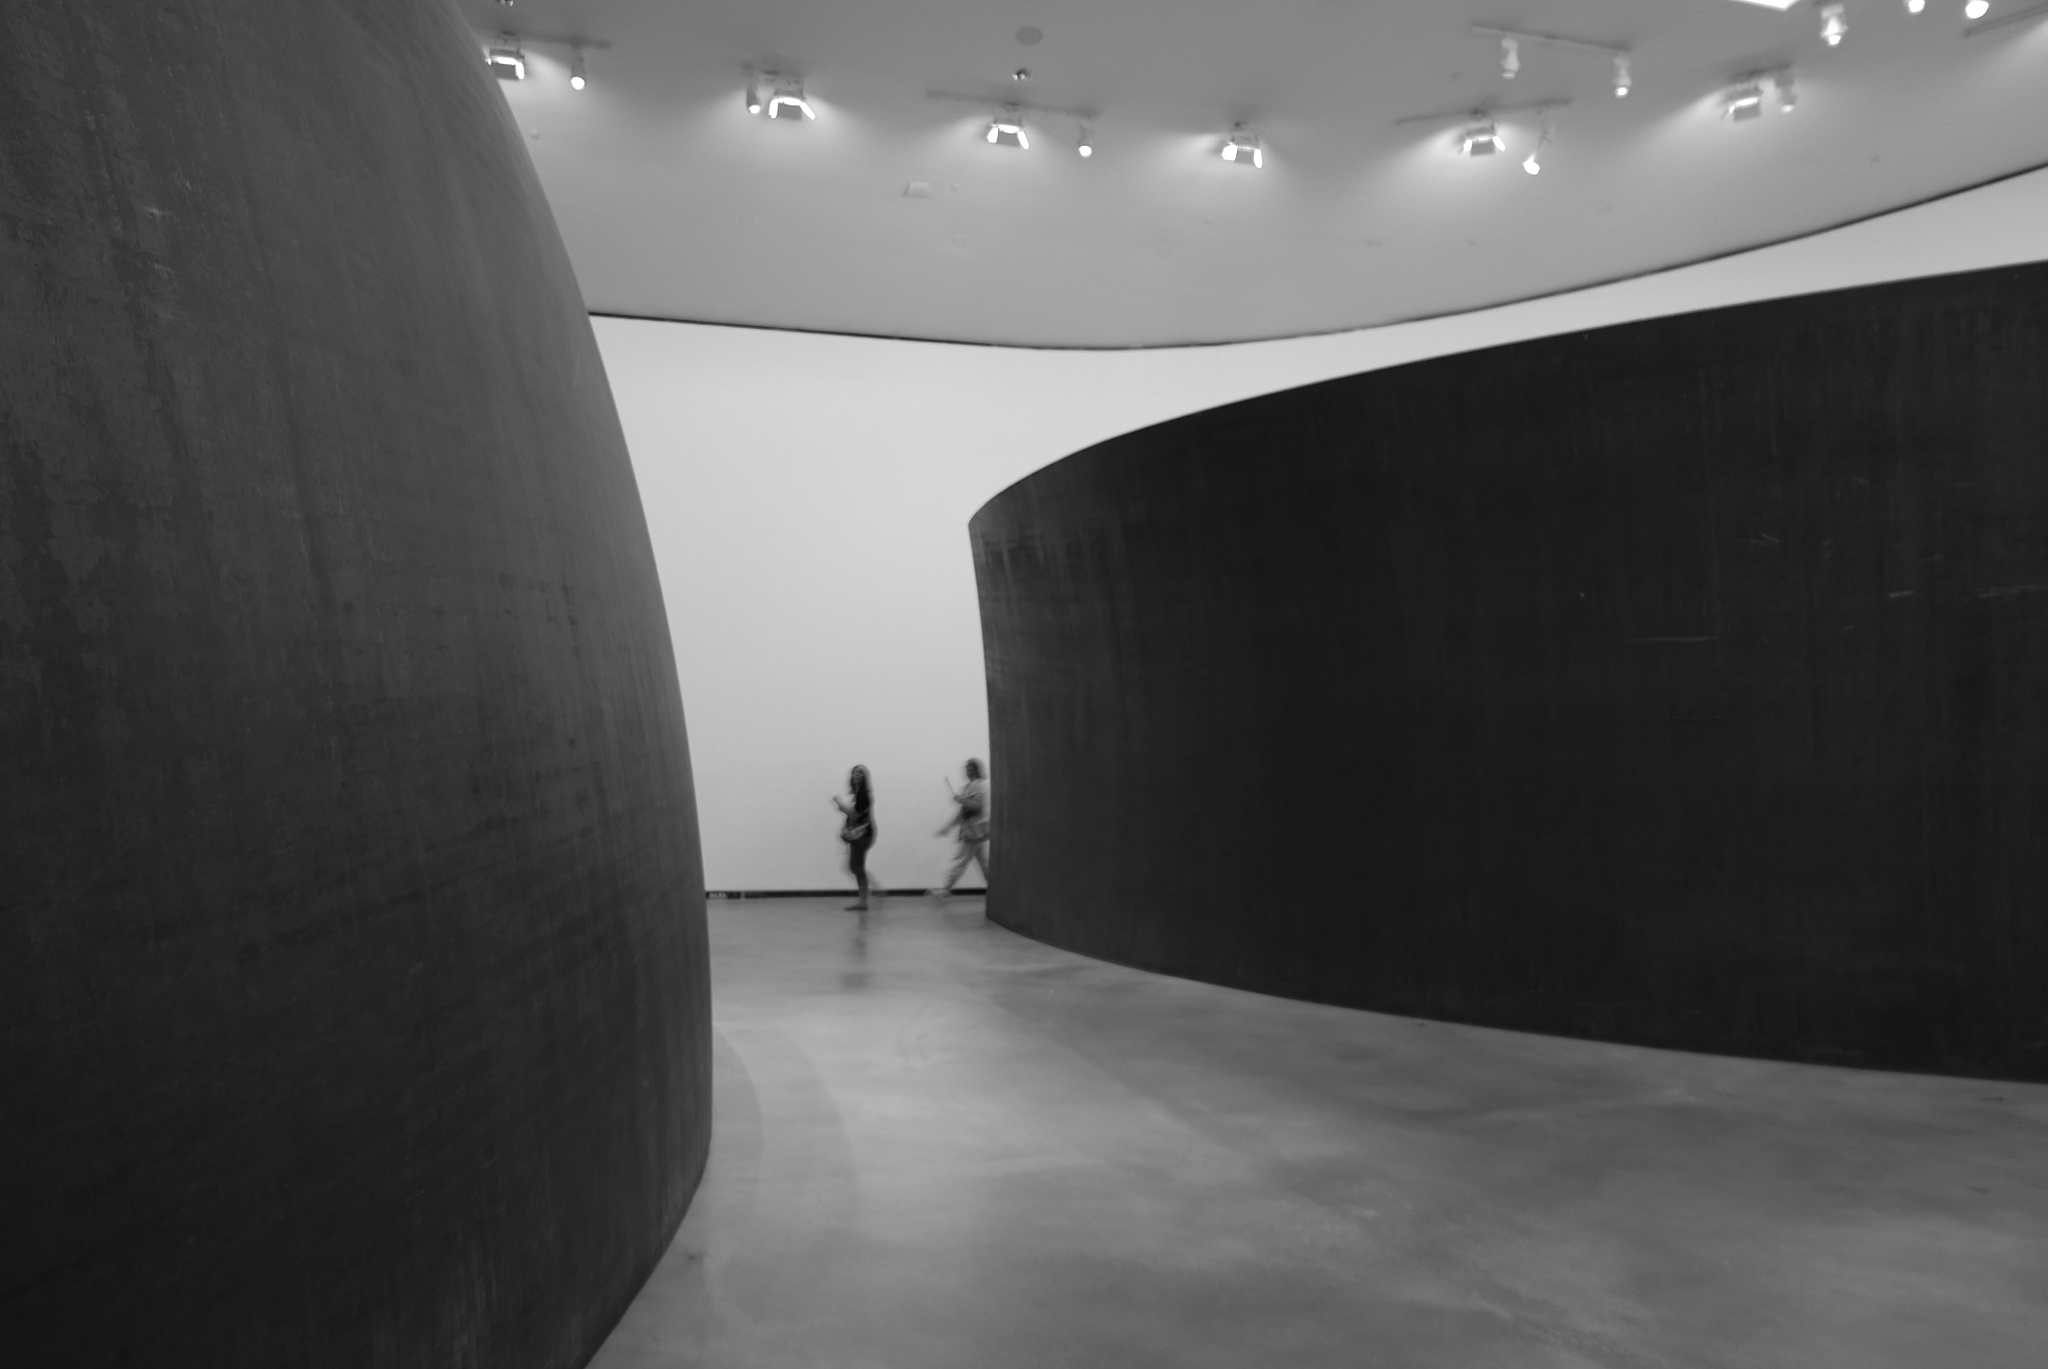 Richard Serra - The Matter of Time Installation - #3 by tony cullen